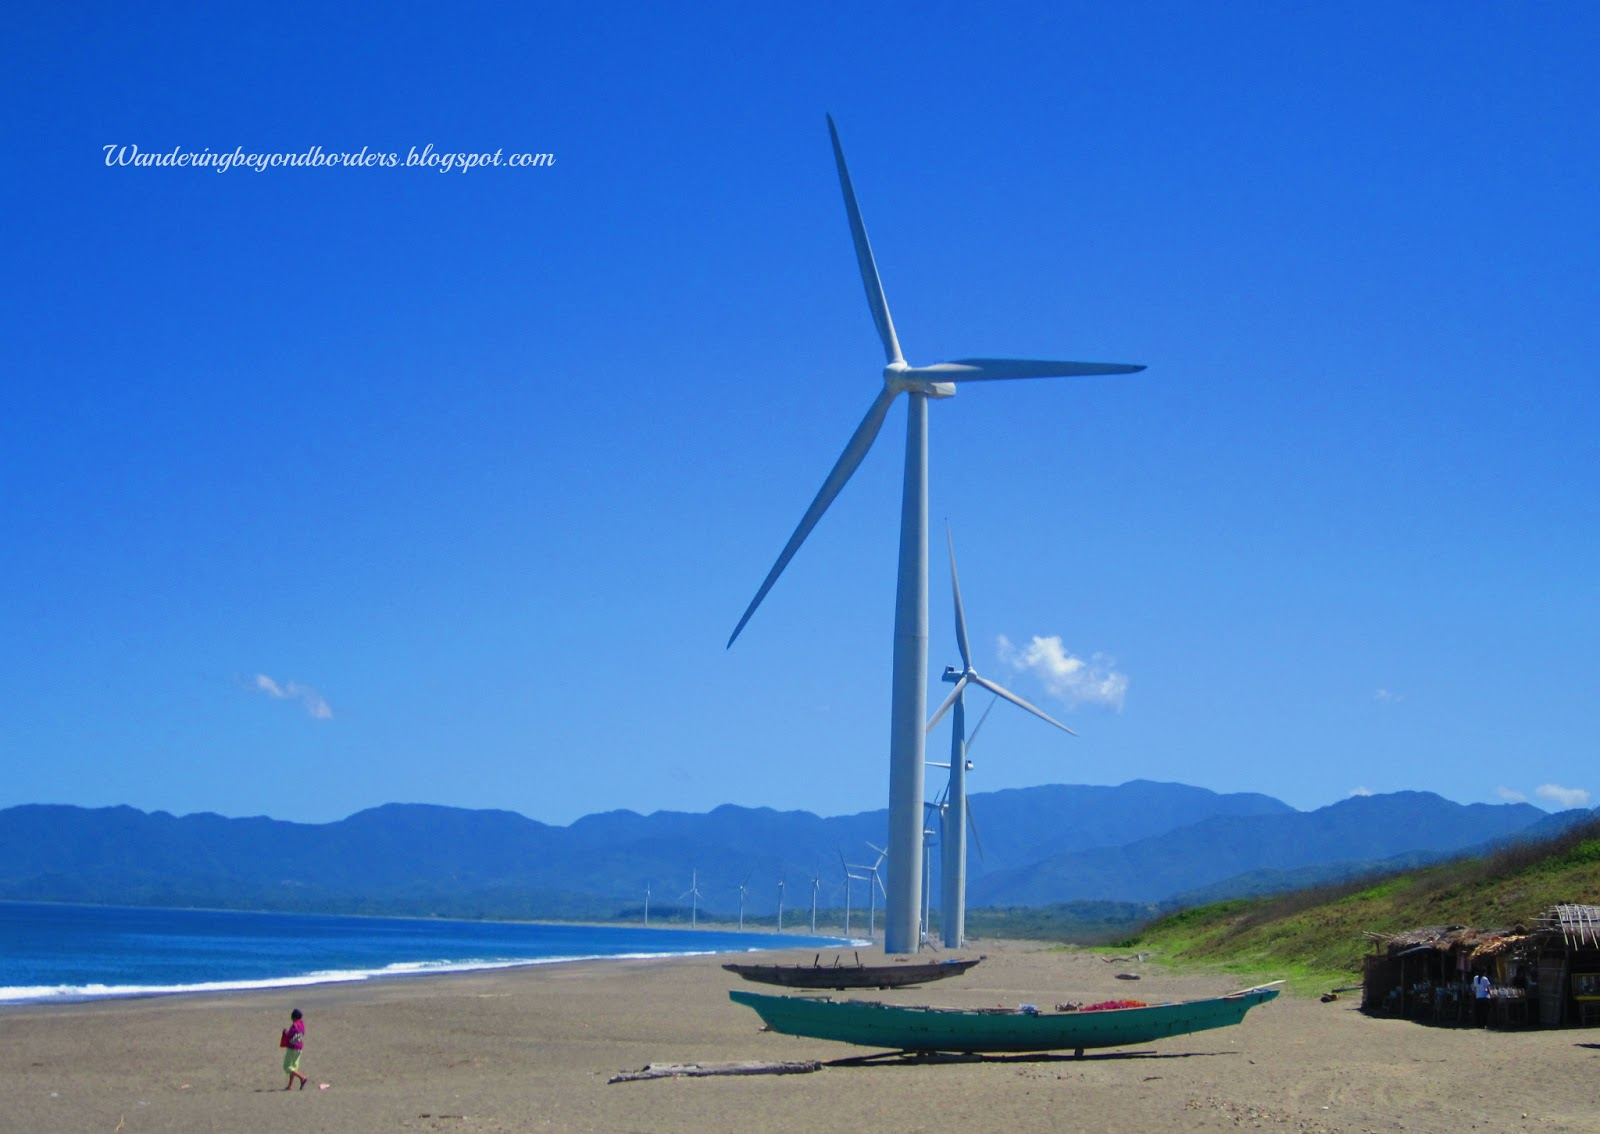 Wandering Beyond Borders: Ilocos Norte : The Towering Bangui Windmills